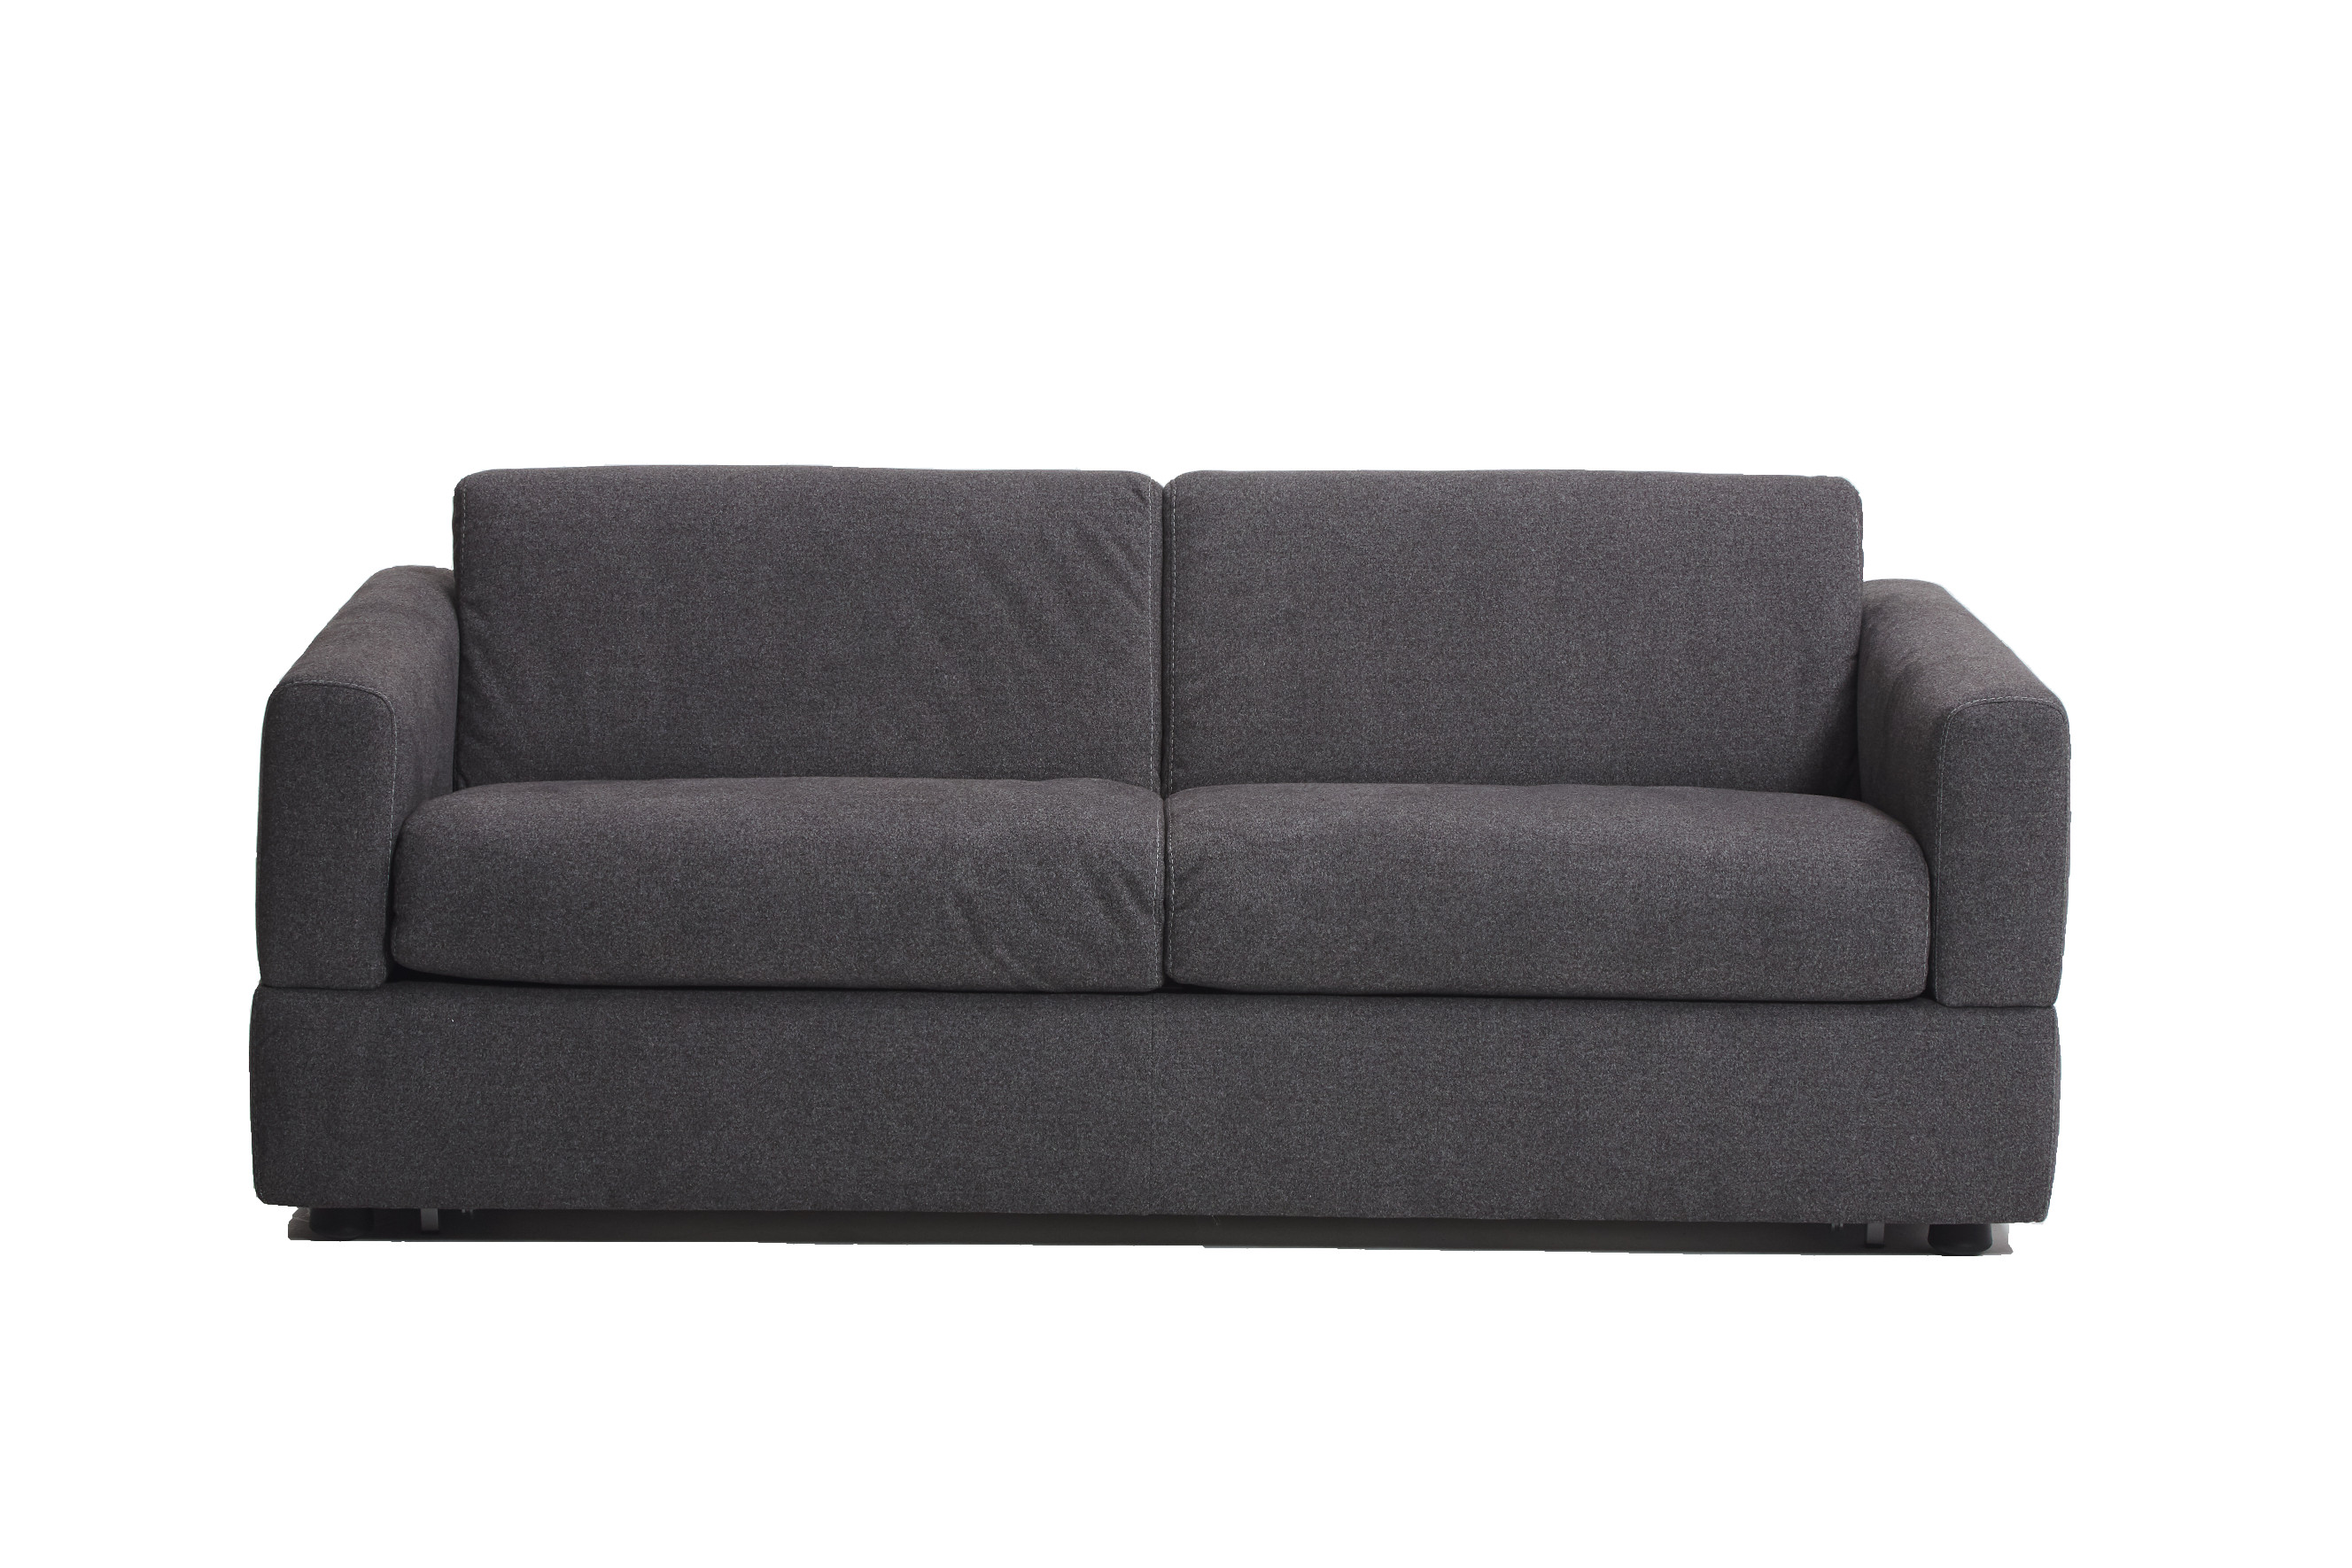 Visconti Sofa Bed Fabric - Grey